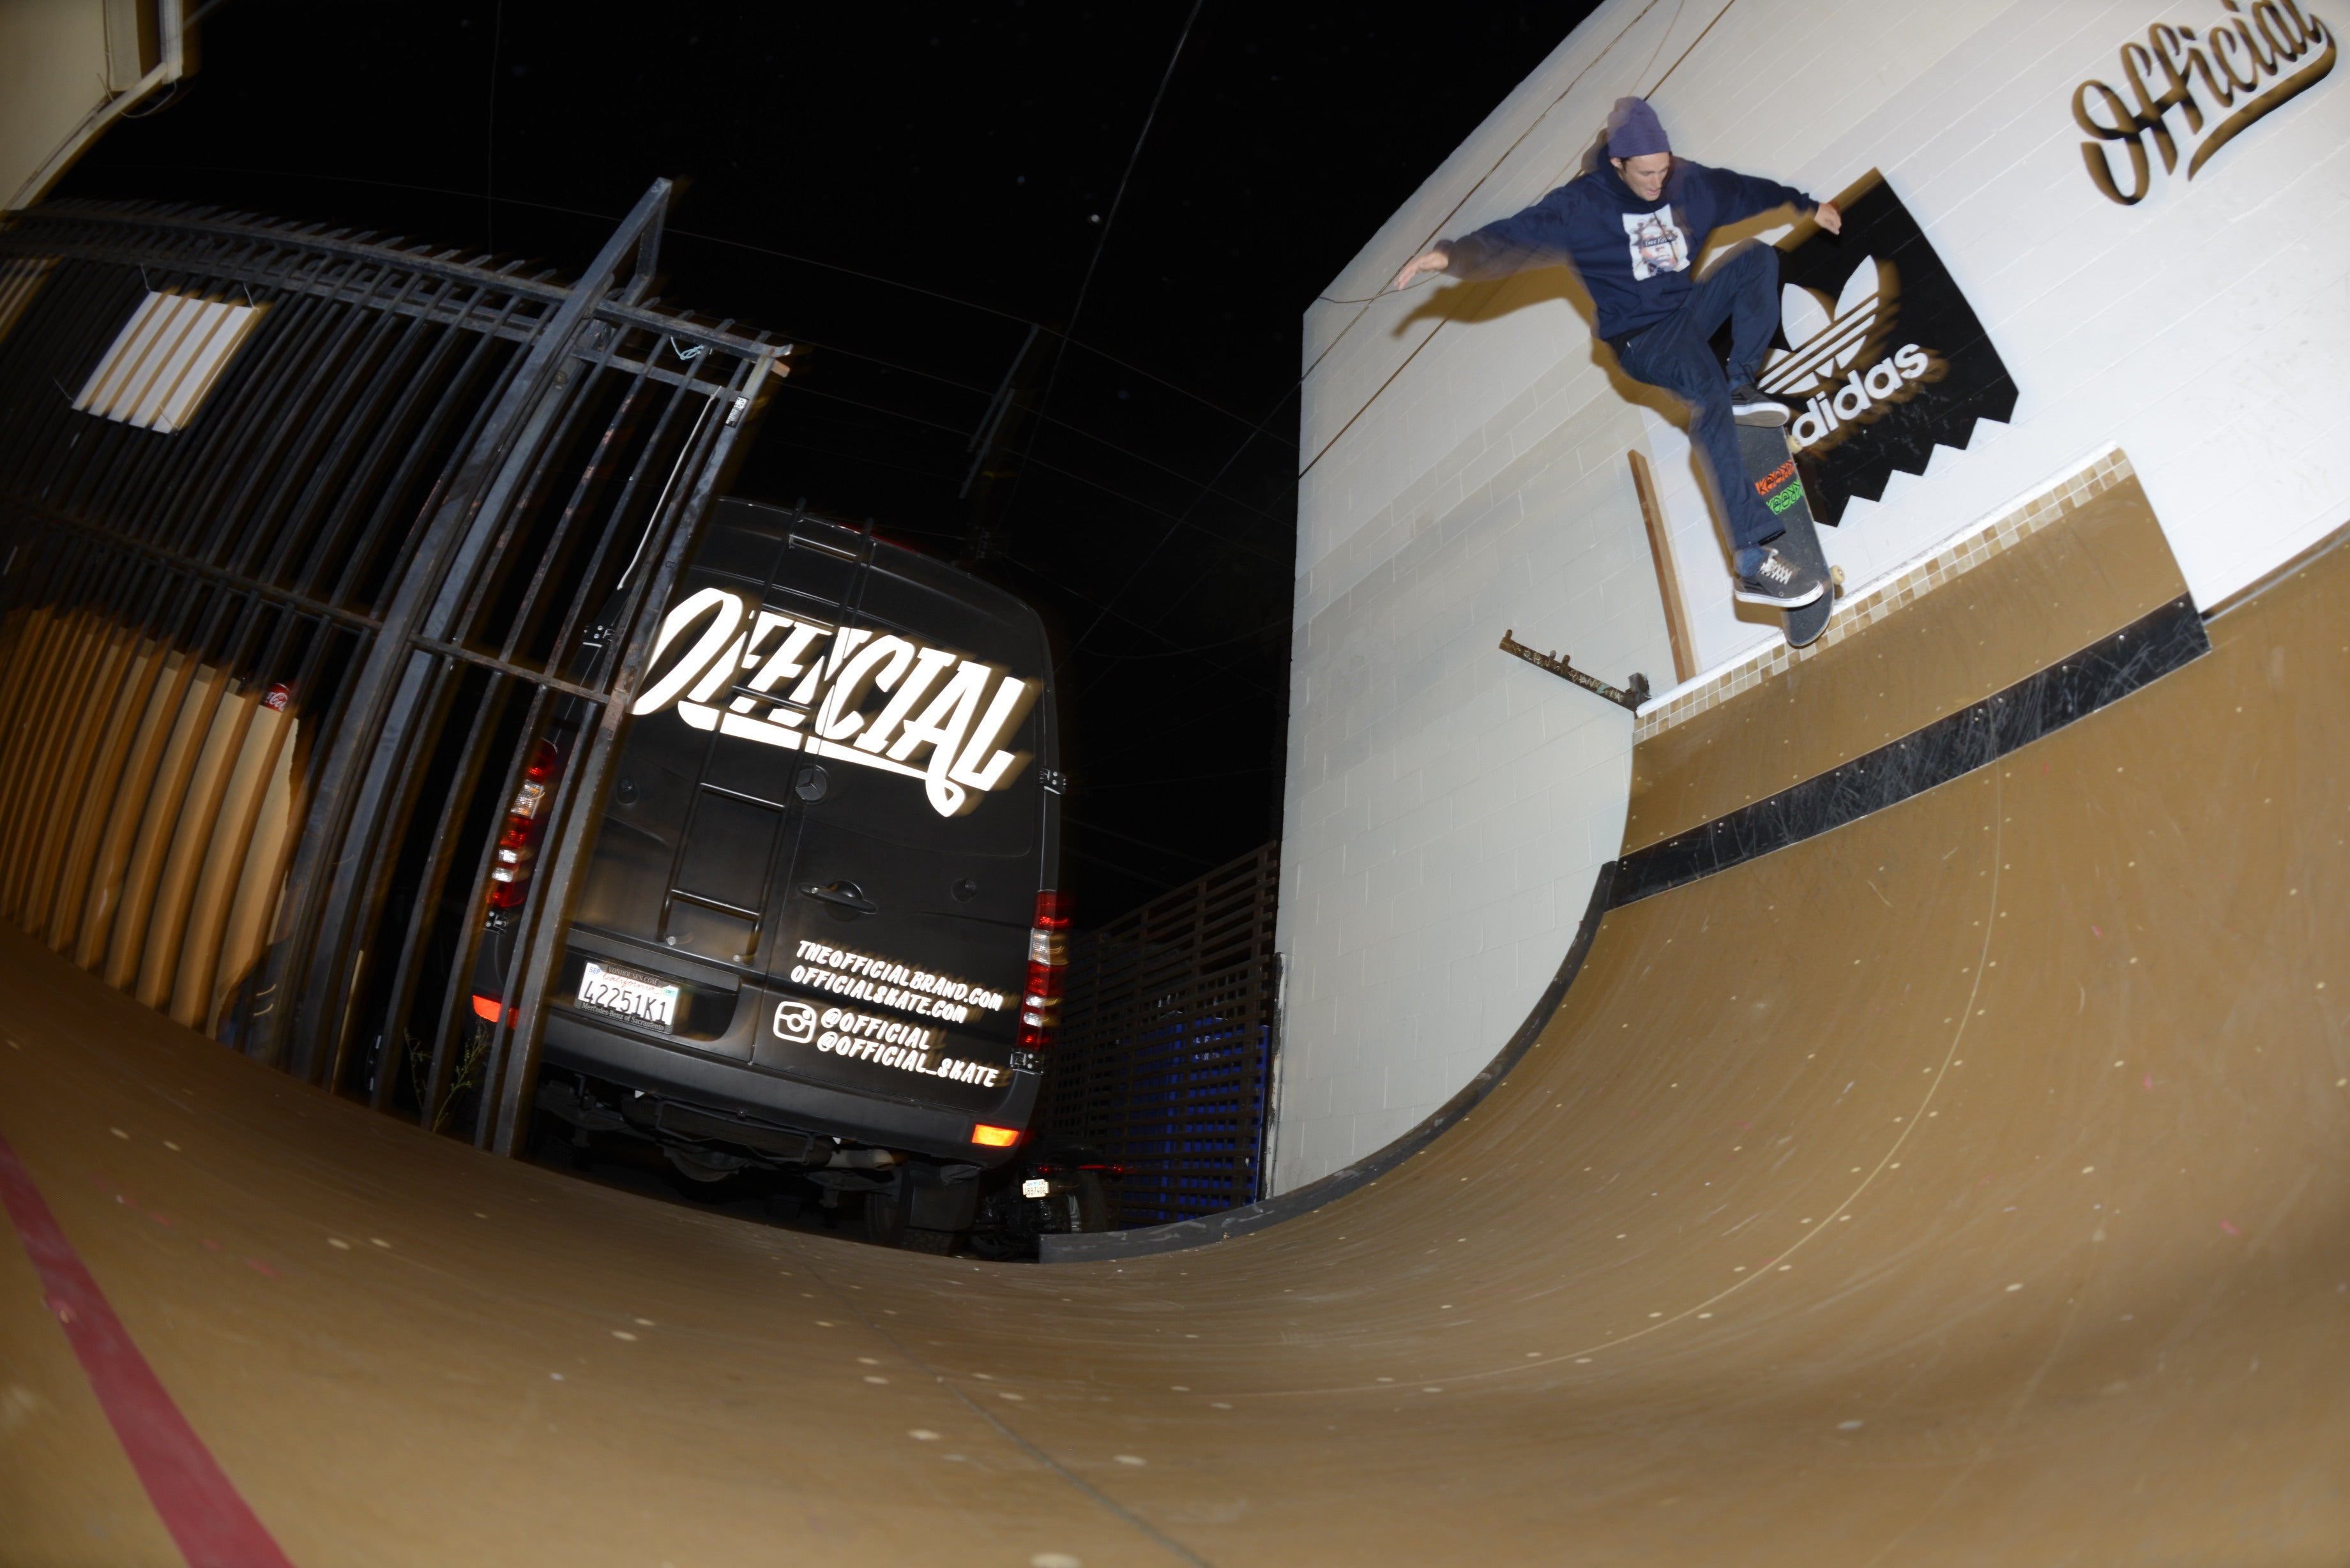 Sebo Walker Switch Blunt Official Skate Adidas Release Party